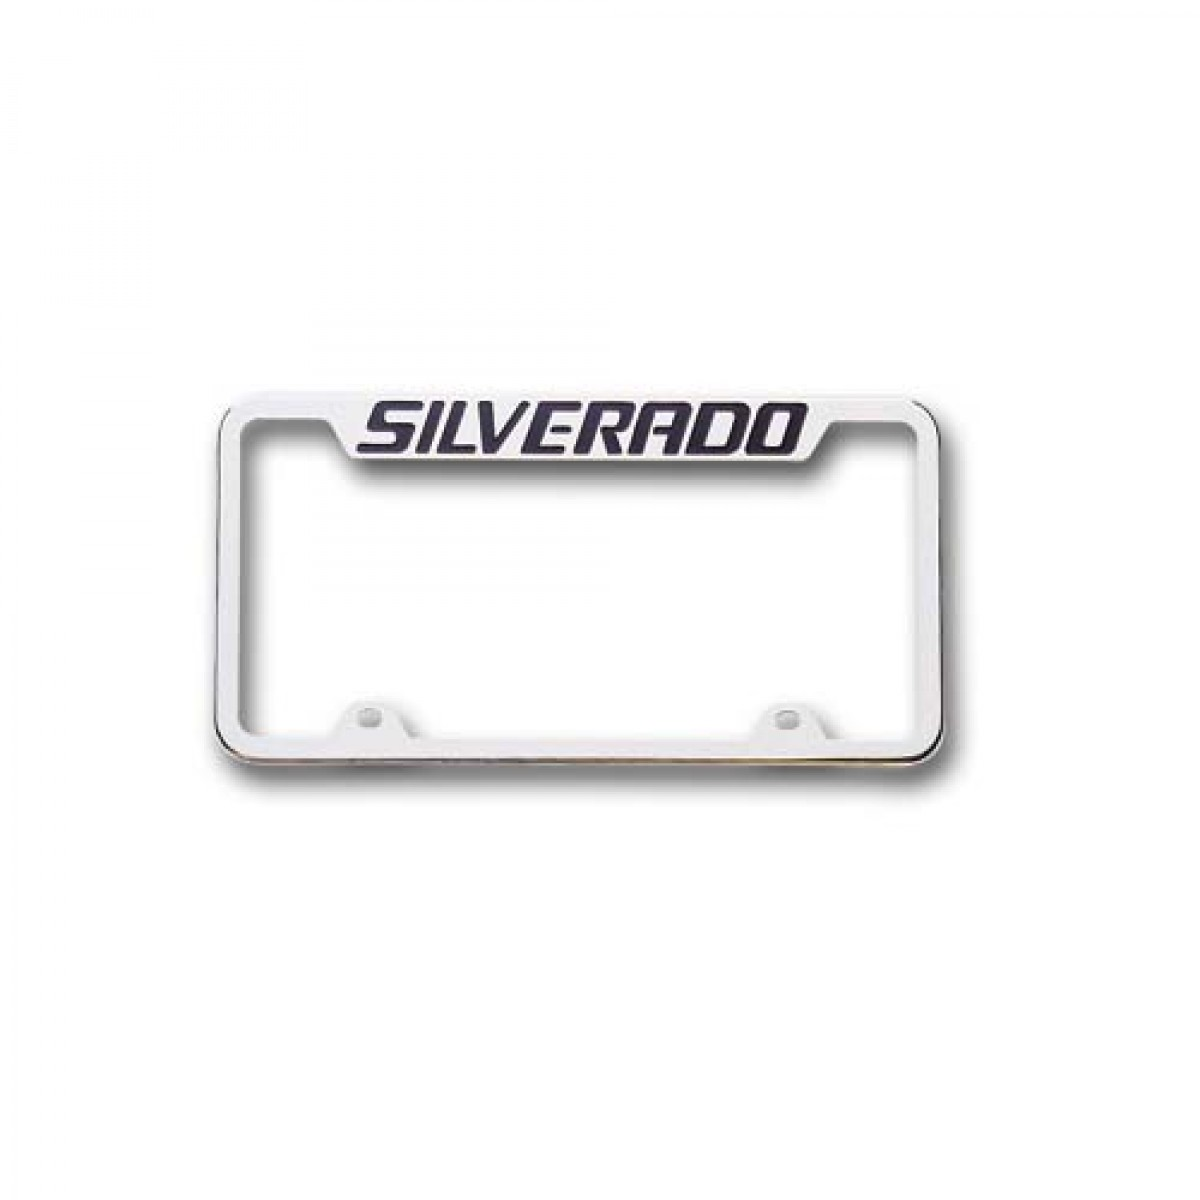 HossRods.com | Chevy Silverado License Plate Frame - Chrome | Hot ...